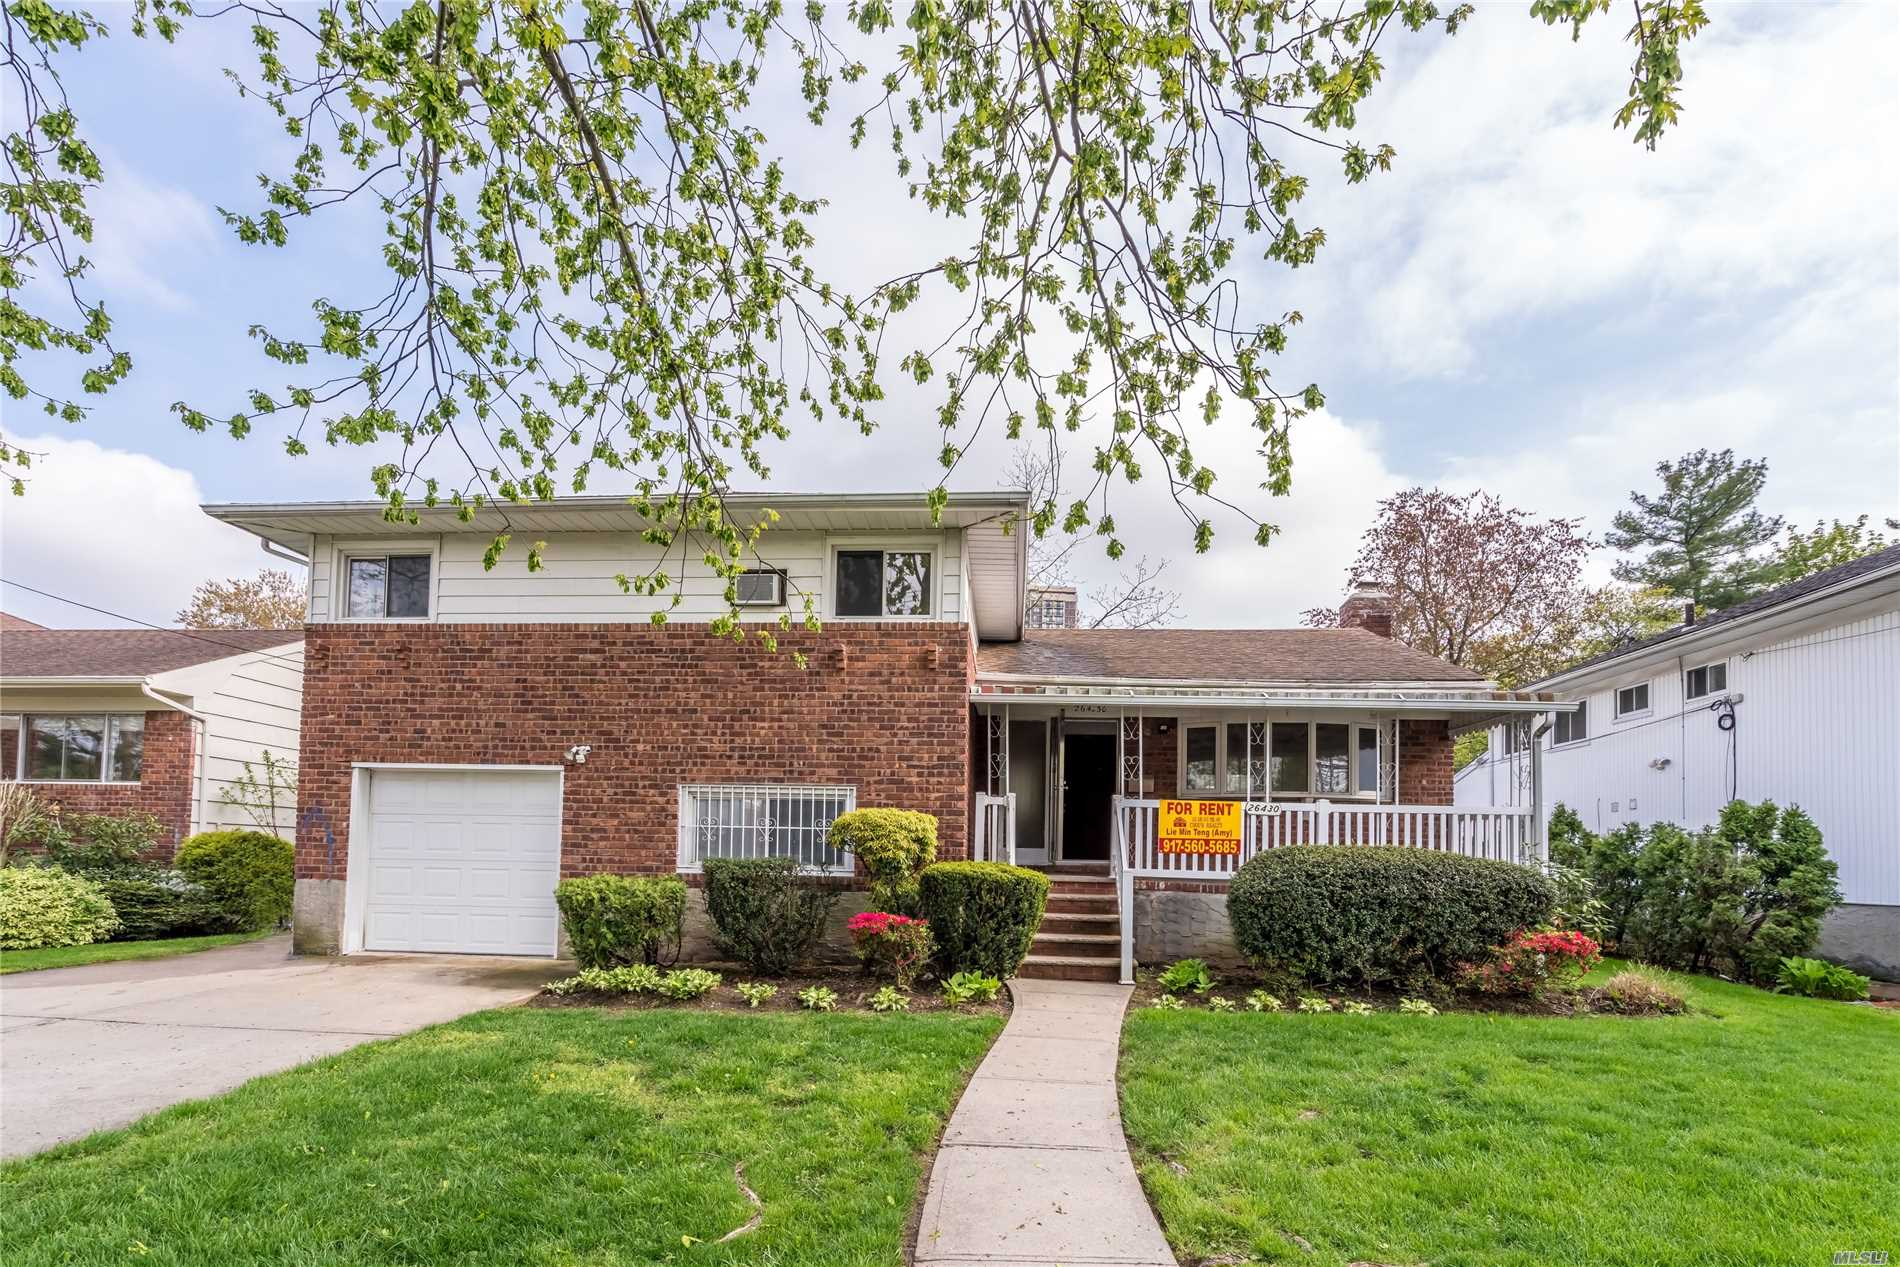 Beautiful Sunny & Bright Detached 4 Level Split In Gorgeous Neighborhood. Excellent School District. New Kitchen And Hardwood Floor. Lot 60X100. Parking And Garage Included. Huge Backyard. Large Front Porch.